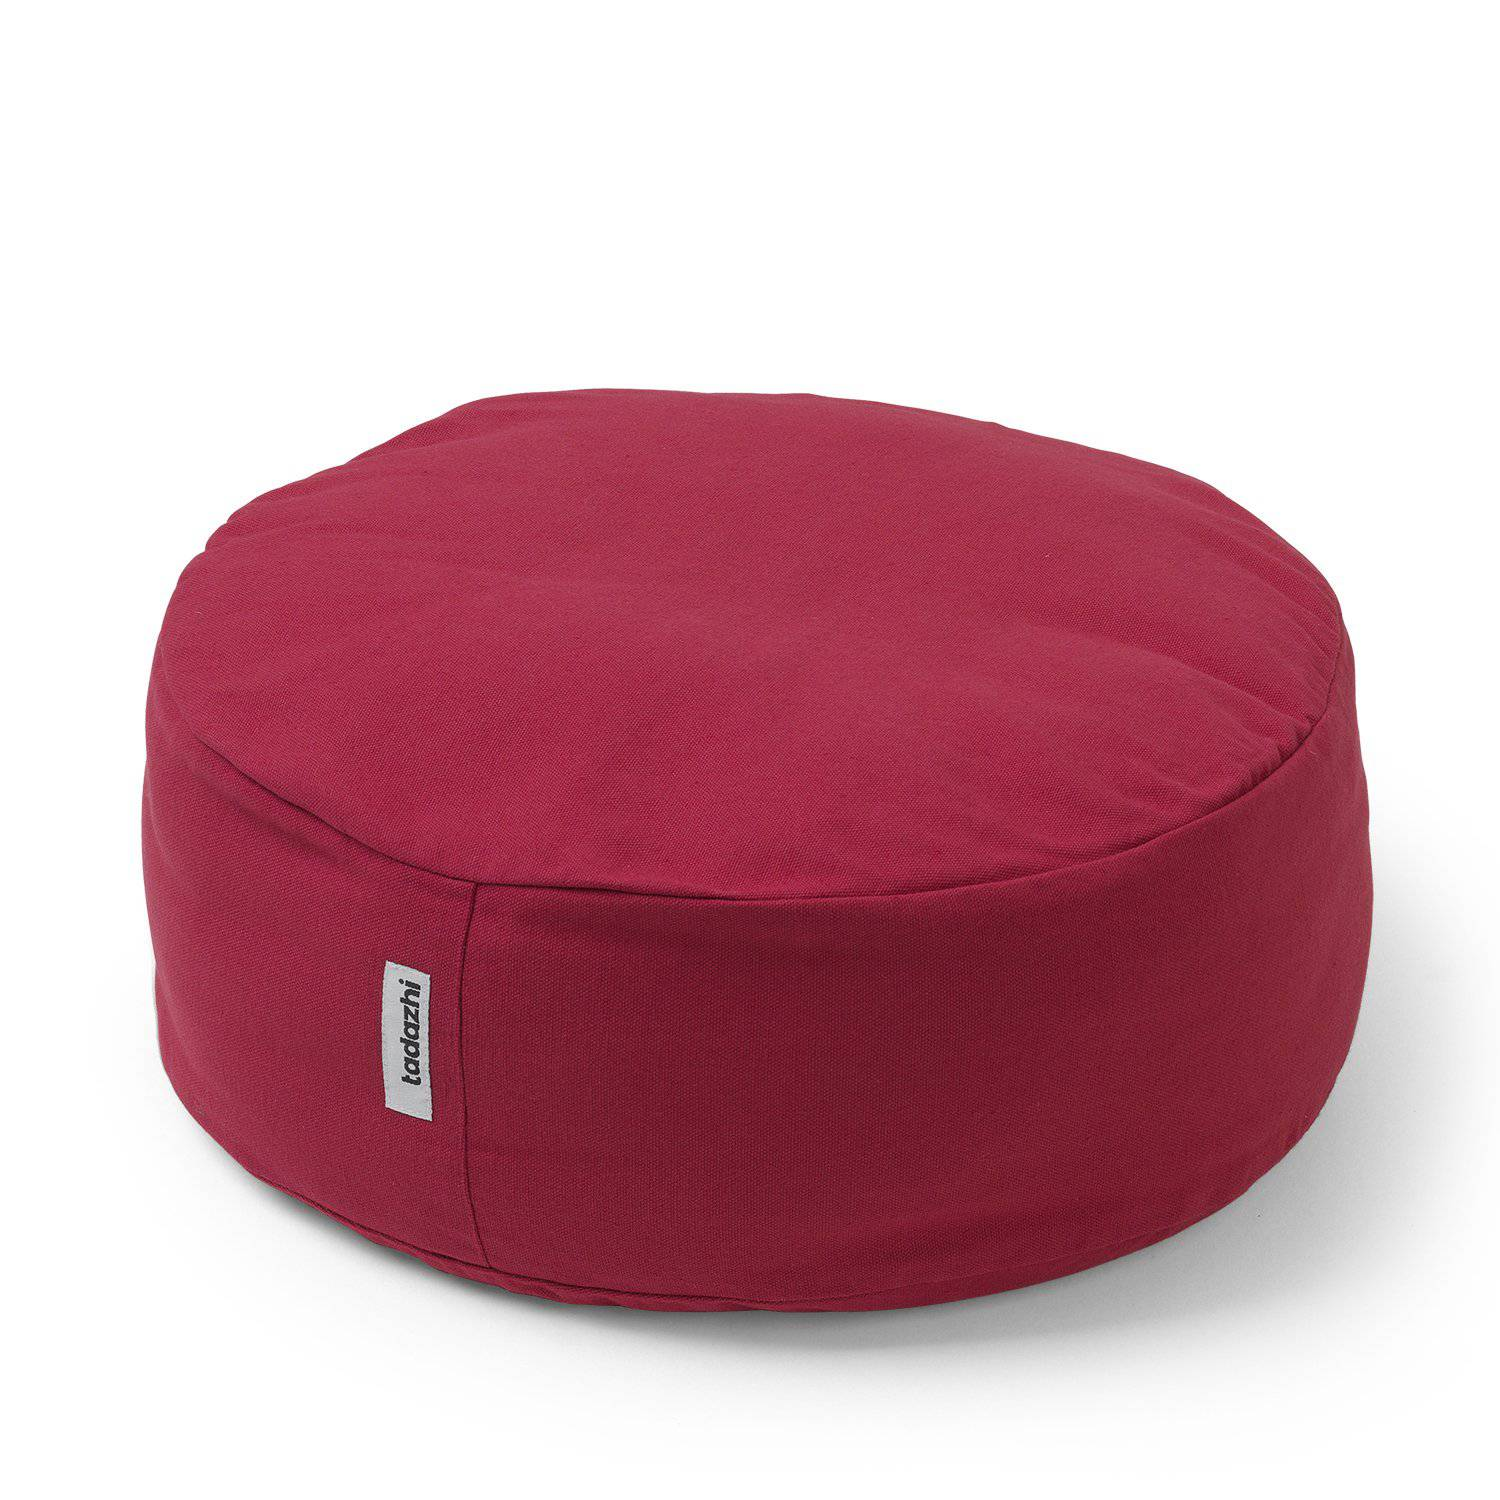 Red - Raised Circular Cushion Bed - Holler Brighton